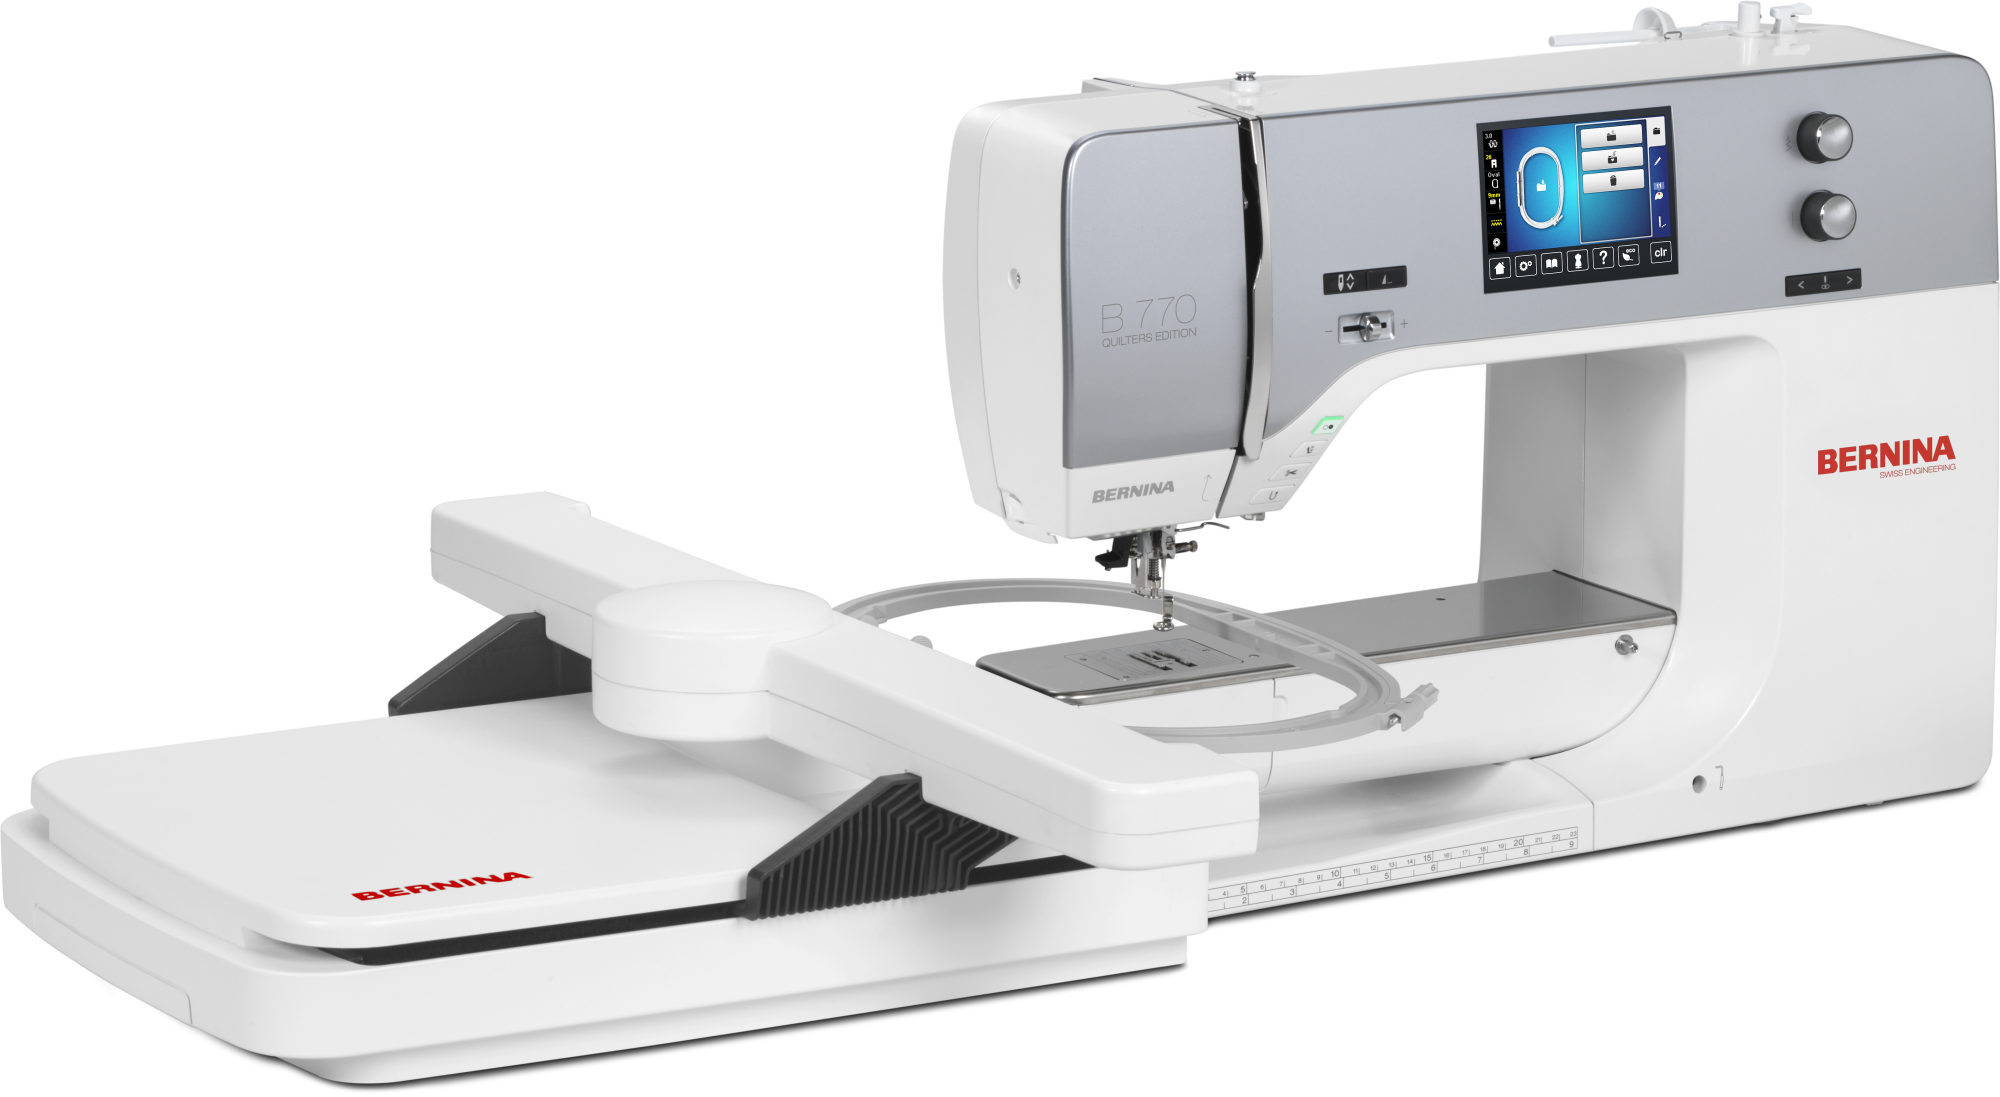 Bernina 770 QEE with embroidery module